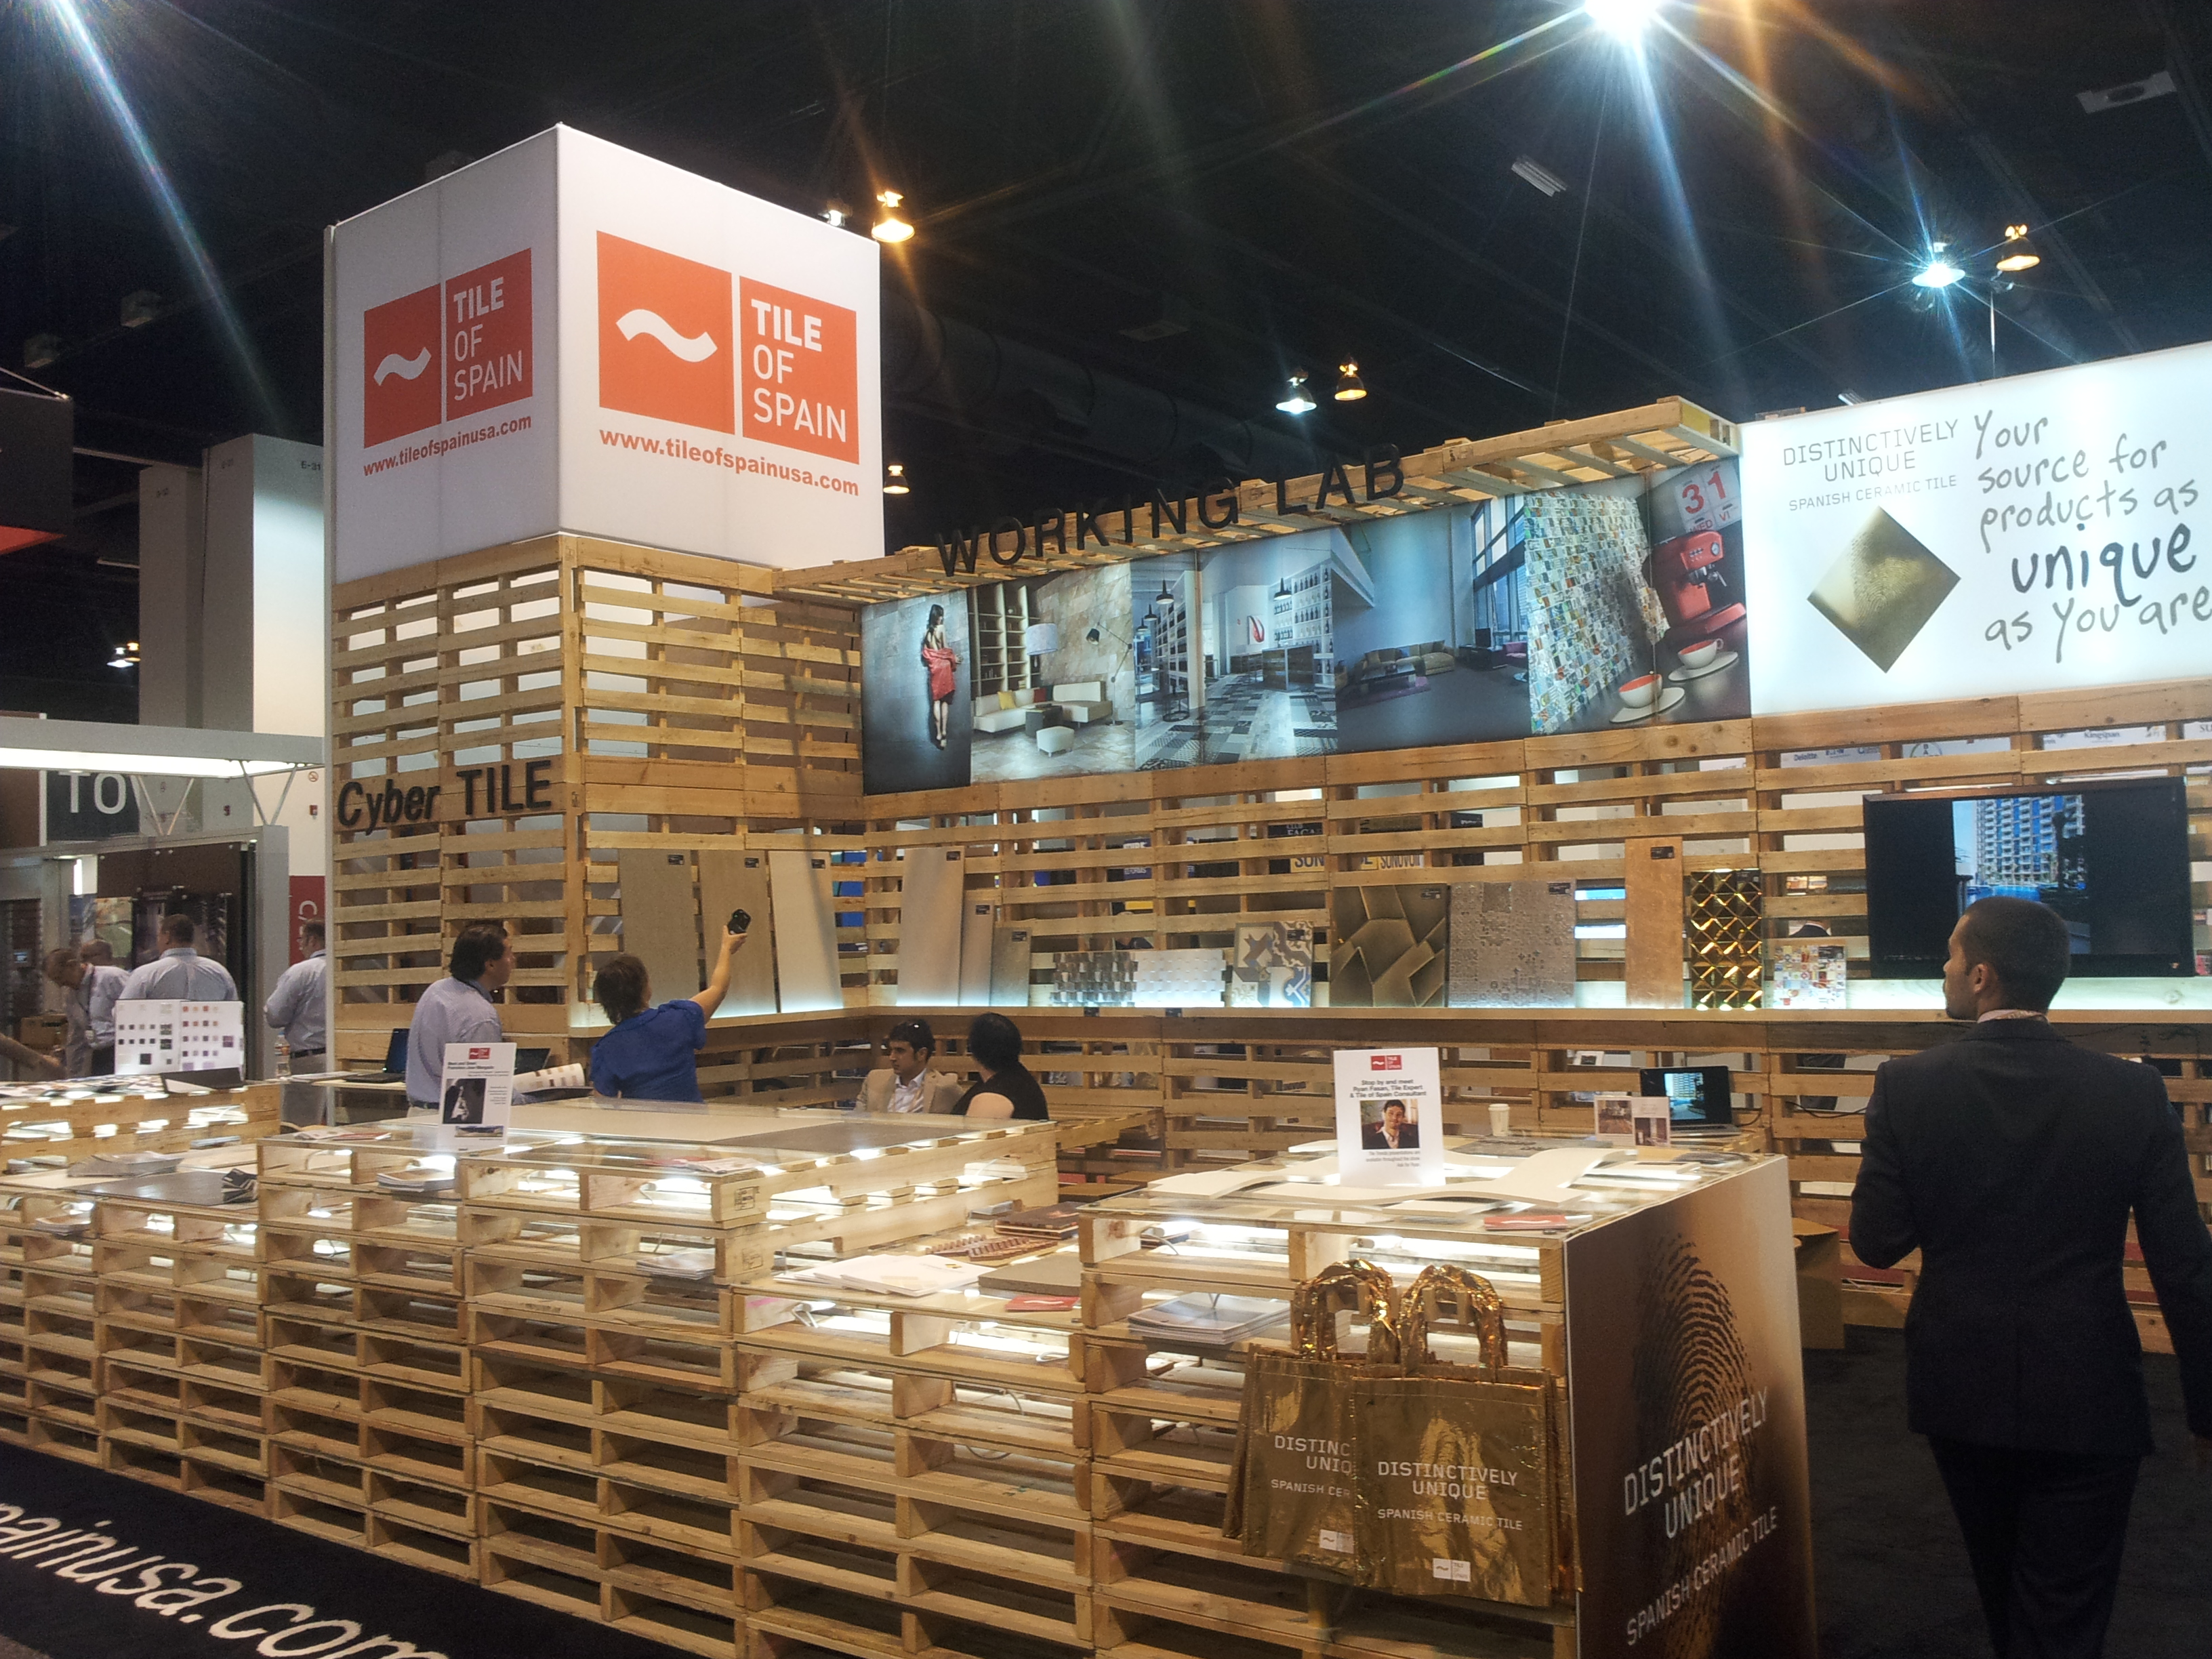 Exhibition Booth In Spanish : Innovations from denver: a review of aia 2013 tile of spain usa